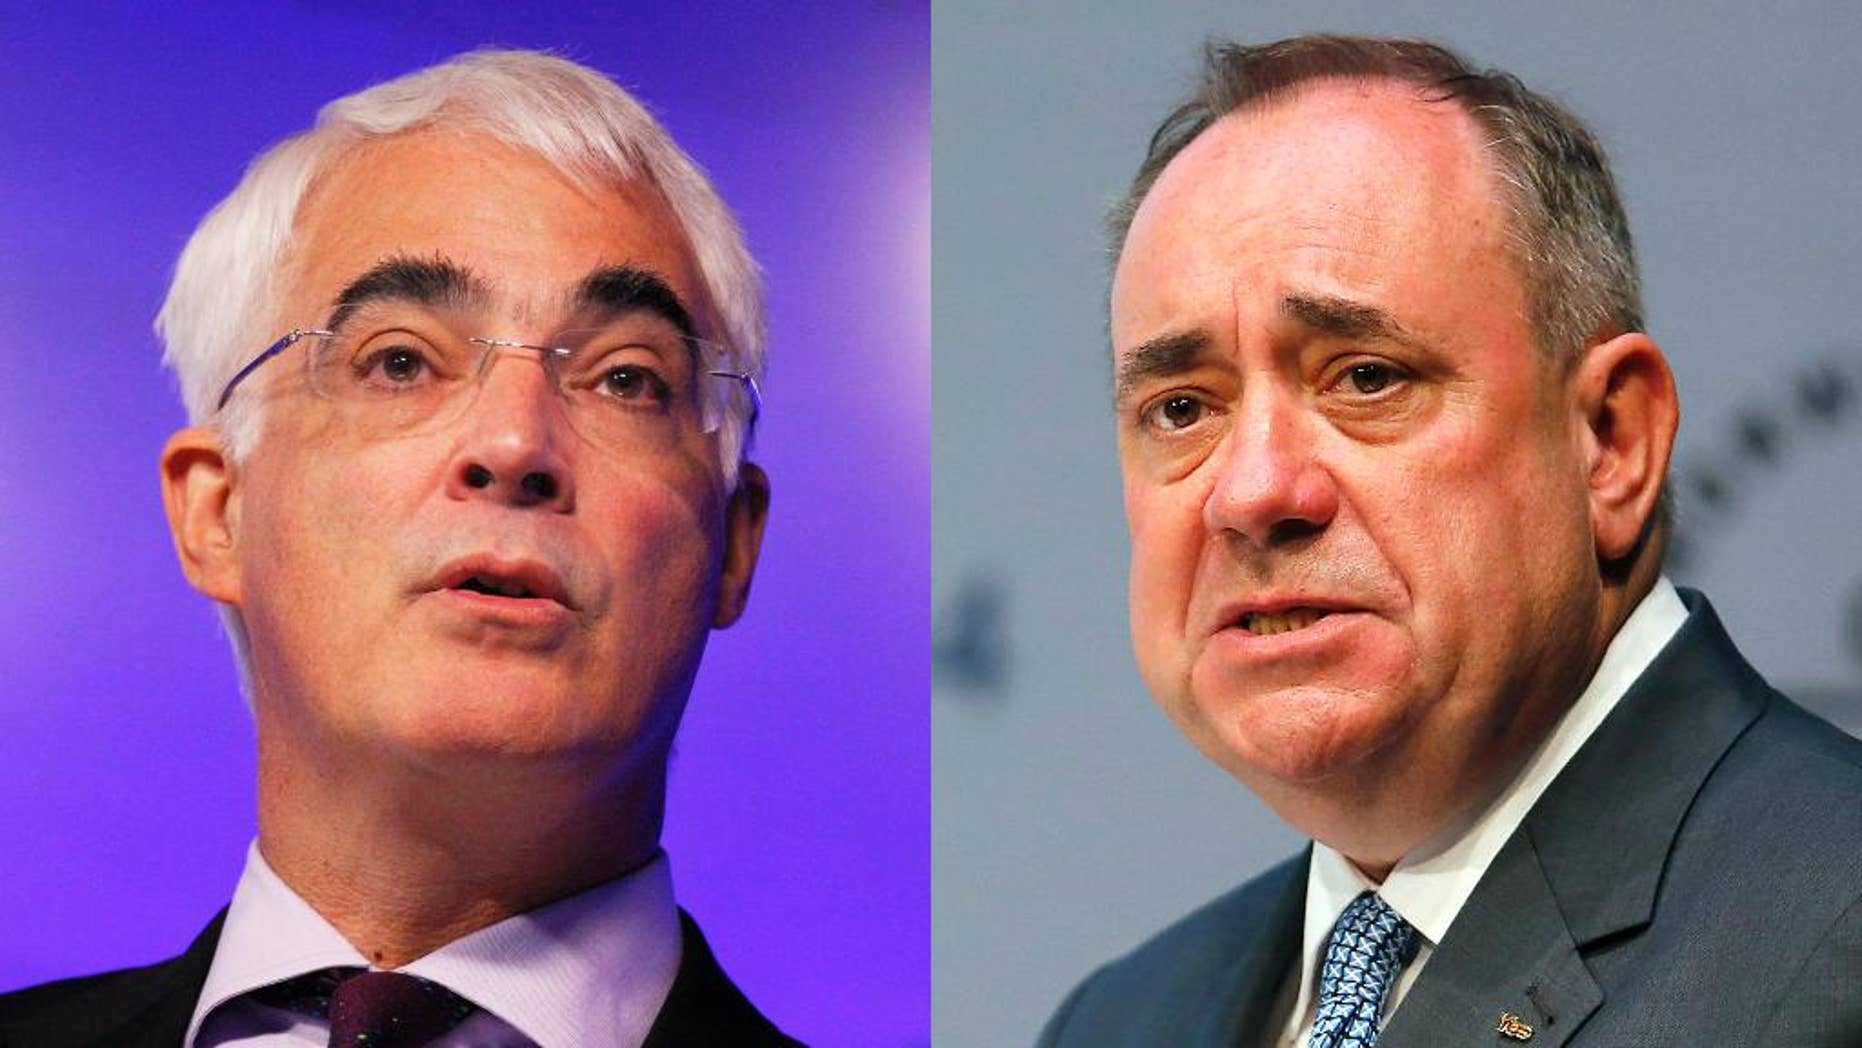 """This combination of 2010 and 2014 photos shows British Chancellor Alistair Darling and Scotland's First Minister Alex Salmond. On Monday, Aug. 25, 2014, Scotland's pro-independence First Minister Salmond and Darling, leader of the """"No"""" campaign, will take part in the last televised debate between the political leaders before the Sept. 18, 2014 referendum. (AP Photo/Sang Tan, Frank Augstein)"""